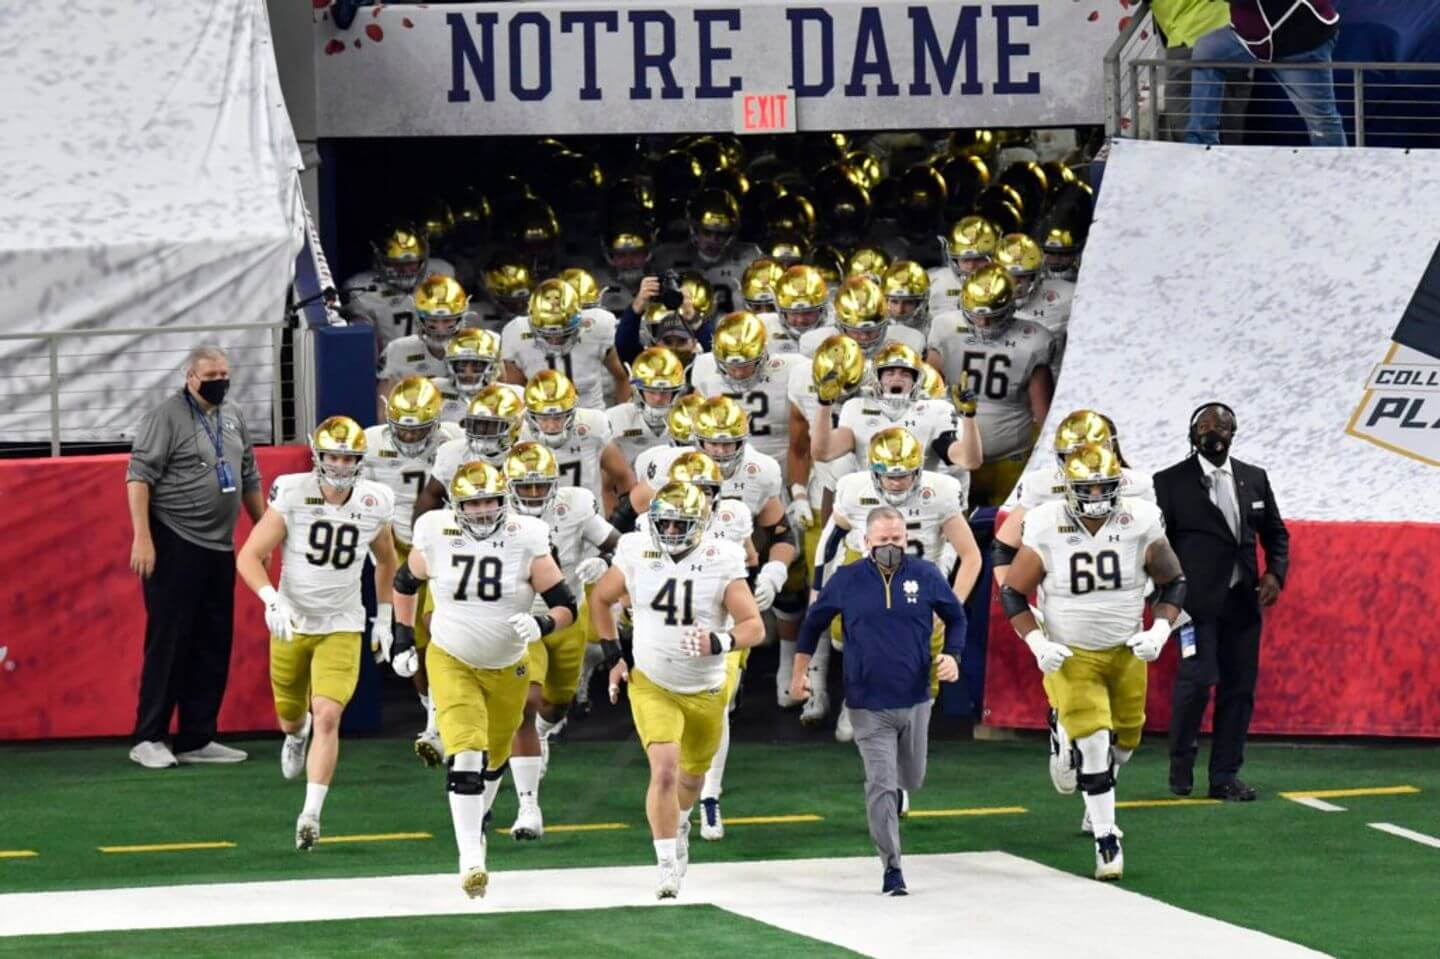 Bye-rish: Notre Dame locked out of playoff bye